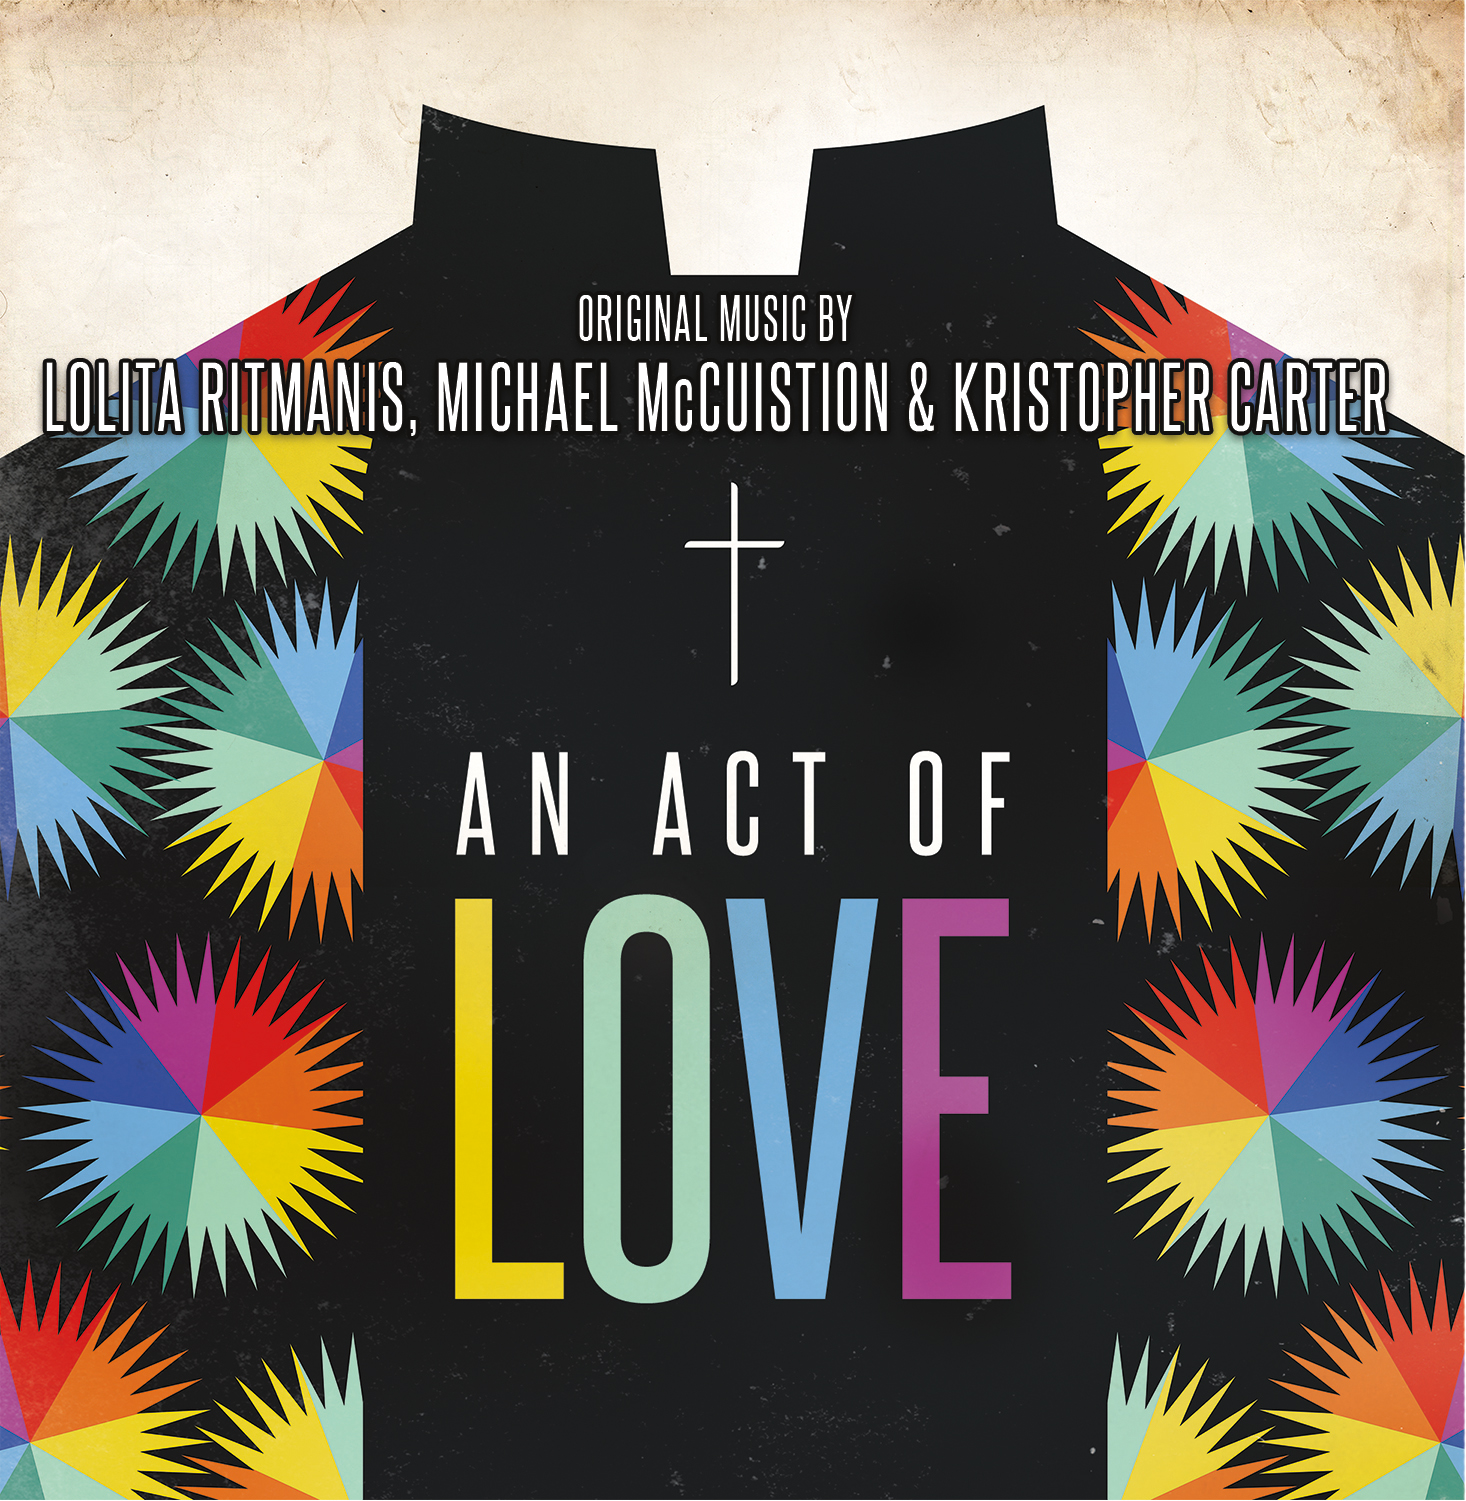 An Act Of Love, Detalles del álbum